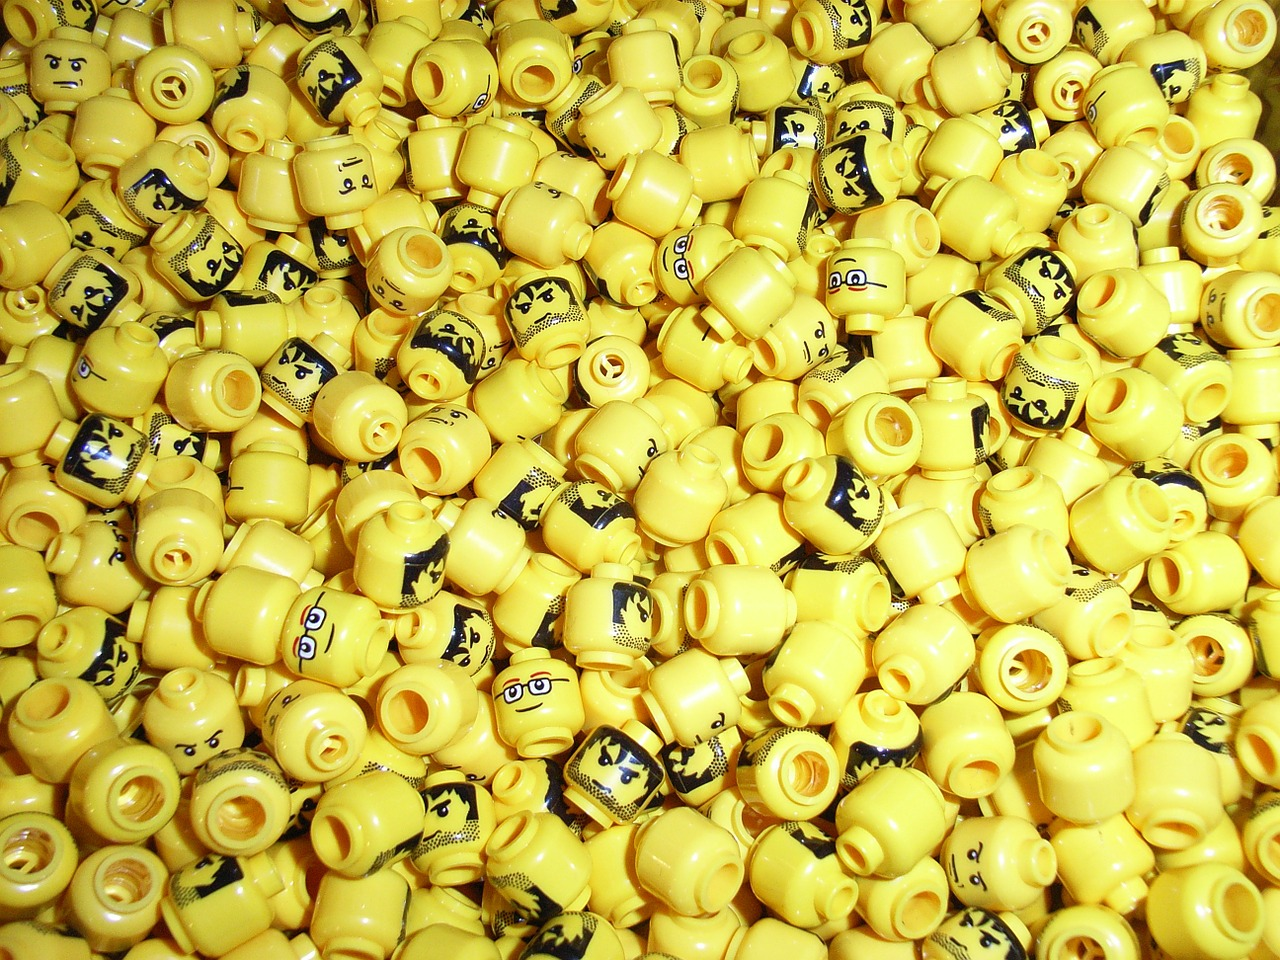 heads lego yellow free photo